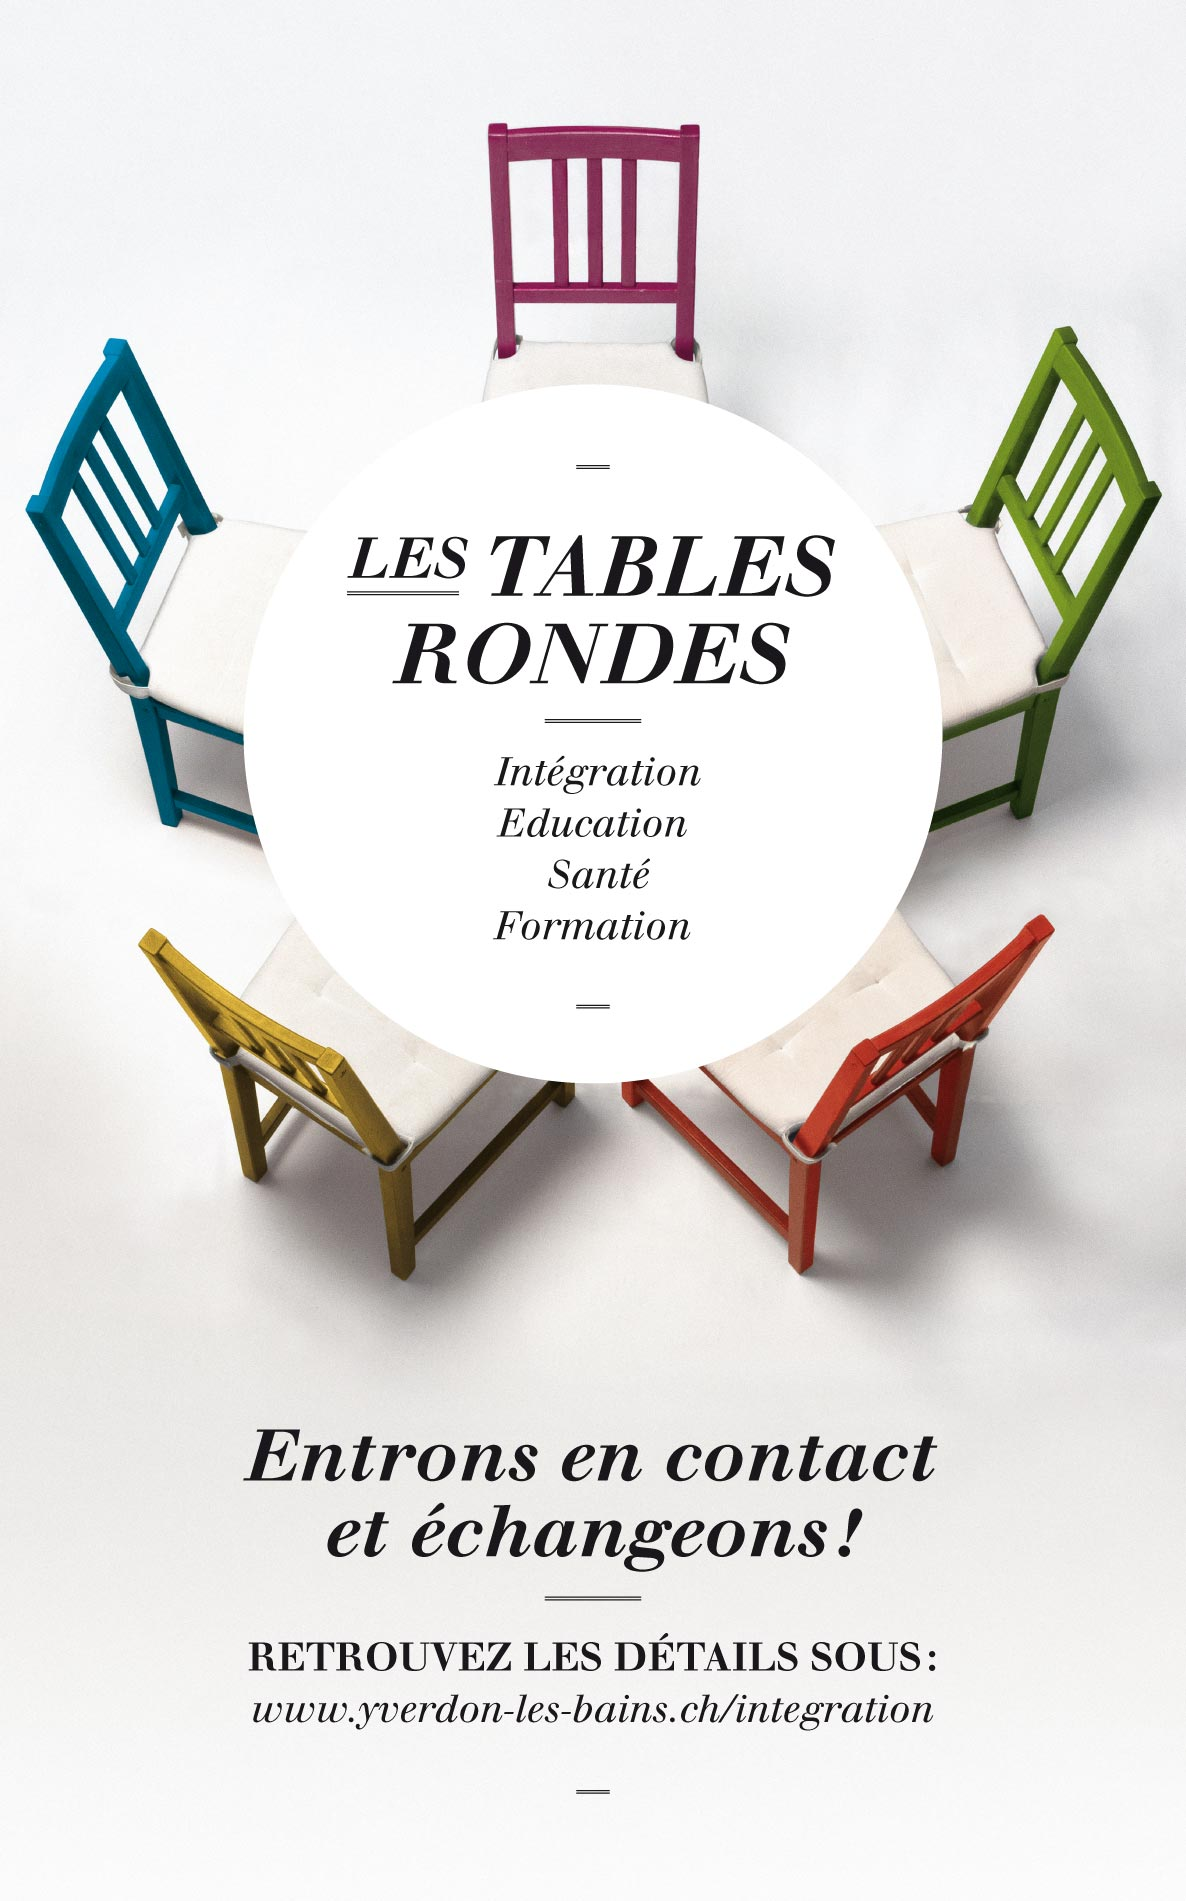 Table Ronde, artwork: Thierry Schulé